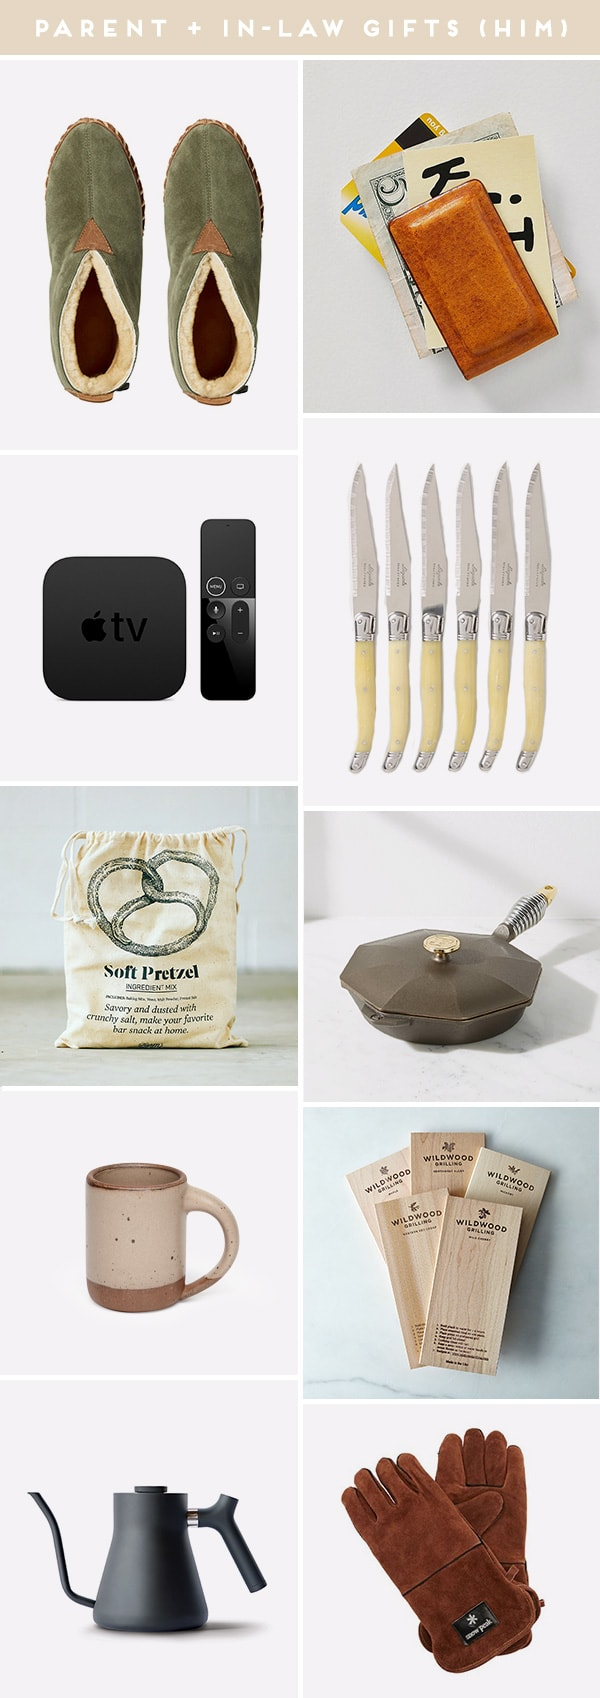 Images of gift ideas for parents and in-laws (his edition)